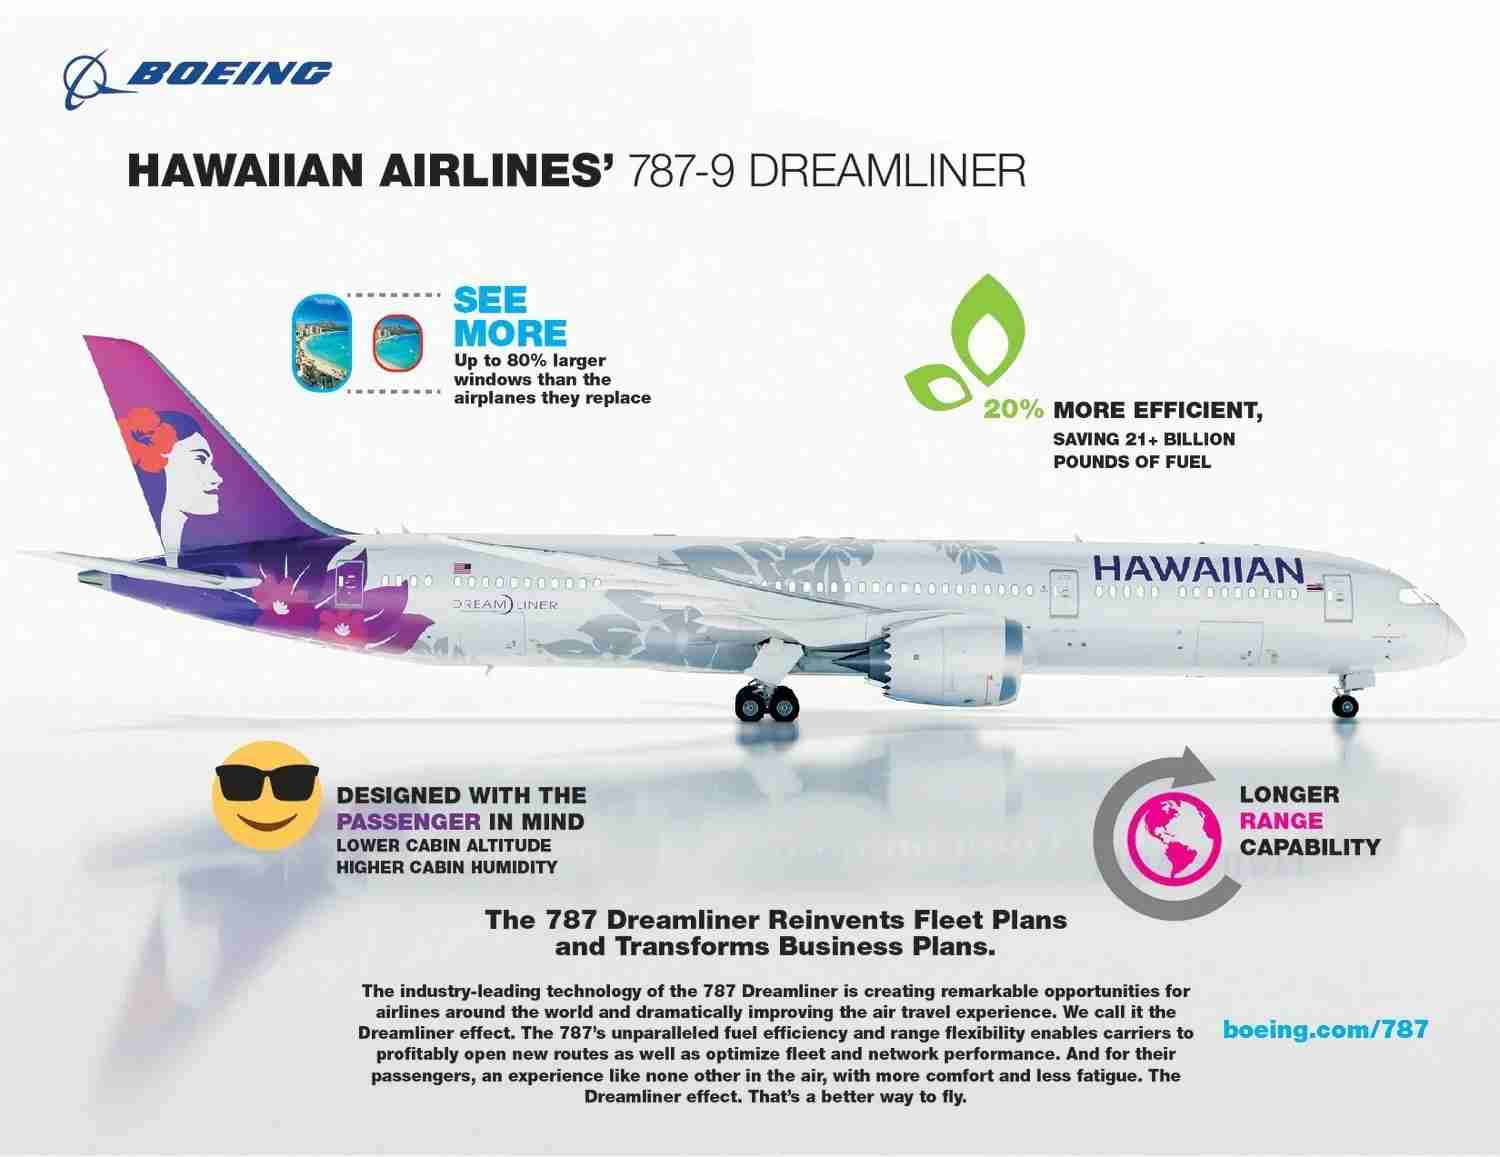 Boeing [NYSE:BA] and Hawaiian Airlines announced today that the carrier has selected the market-leading 787 Dreamliner as its flagship airplane for medium to long-haul flights. This infographic highlights some of the airplane